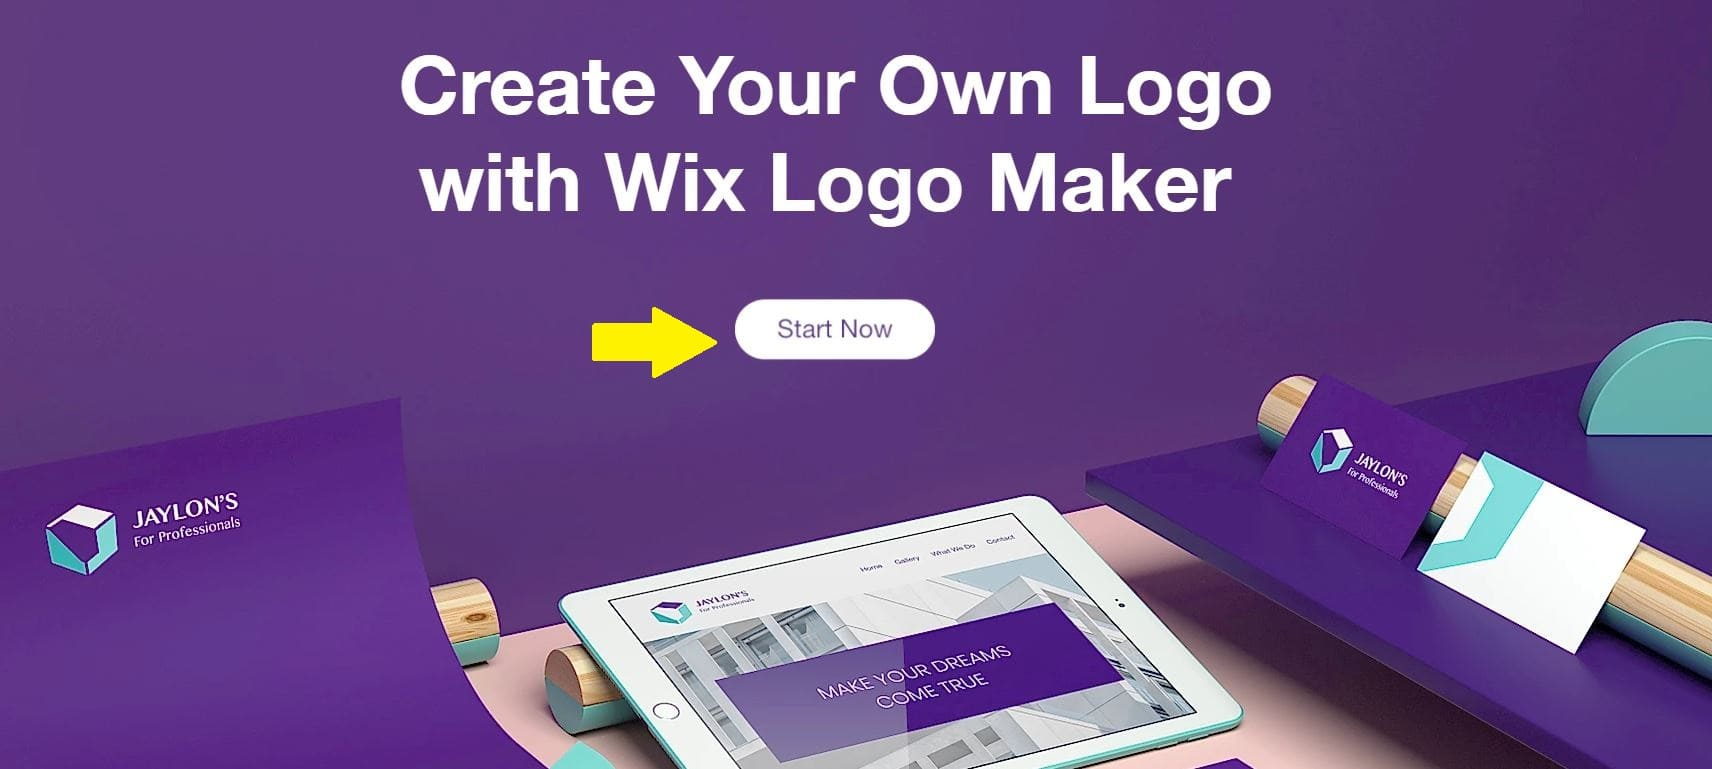 Wix Logo Maker screenshot - Start now